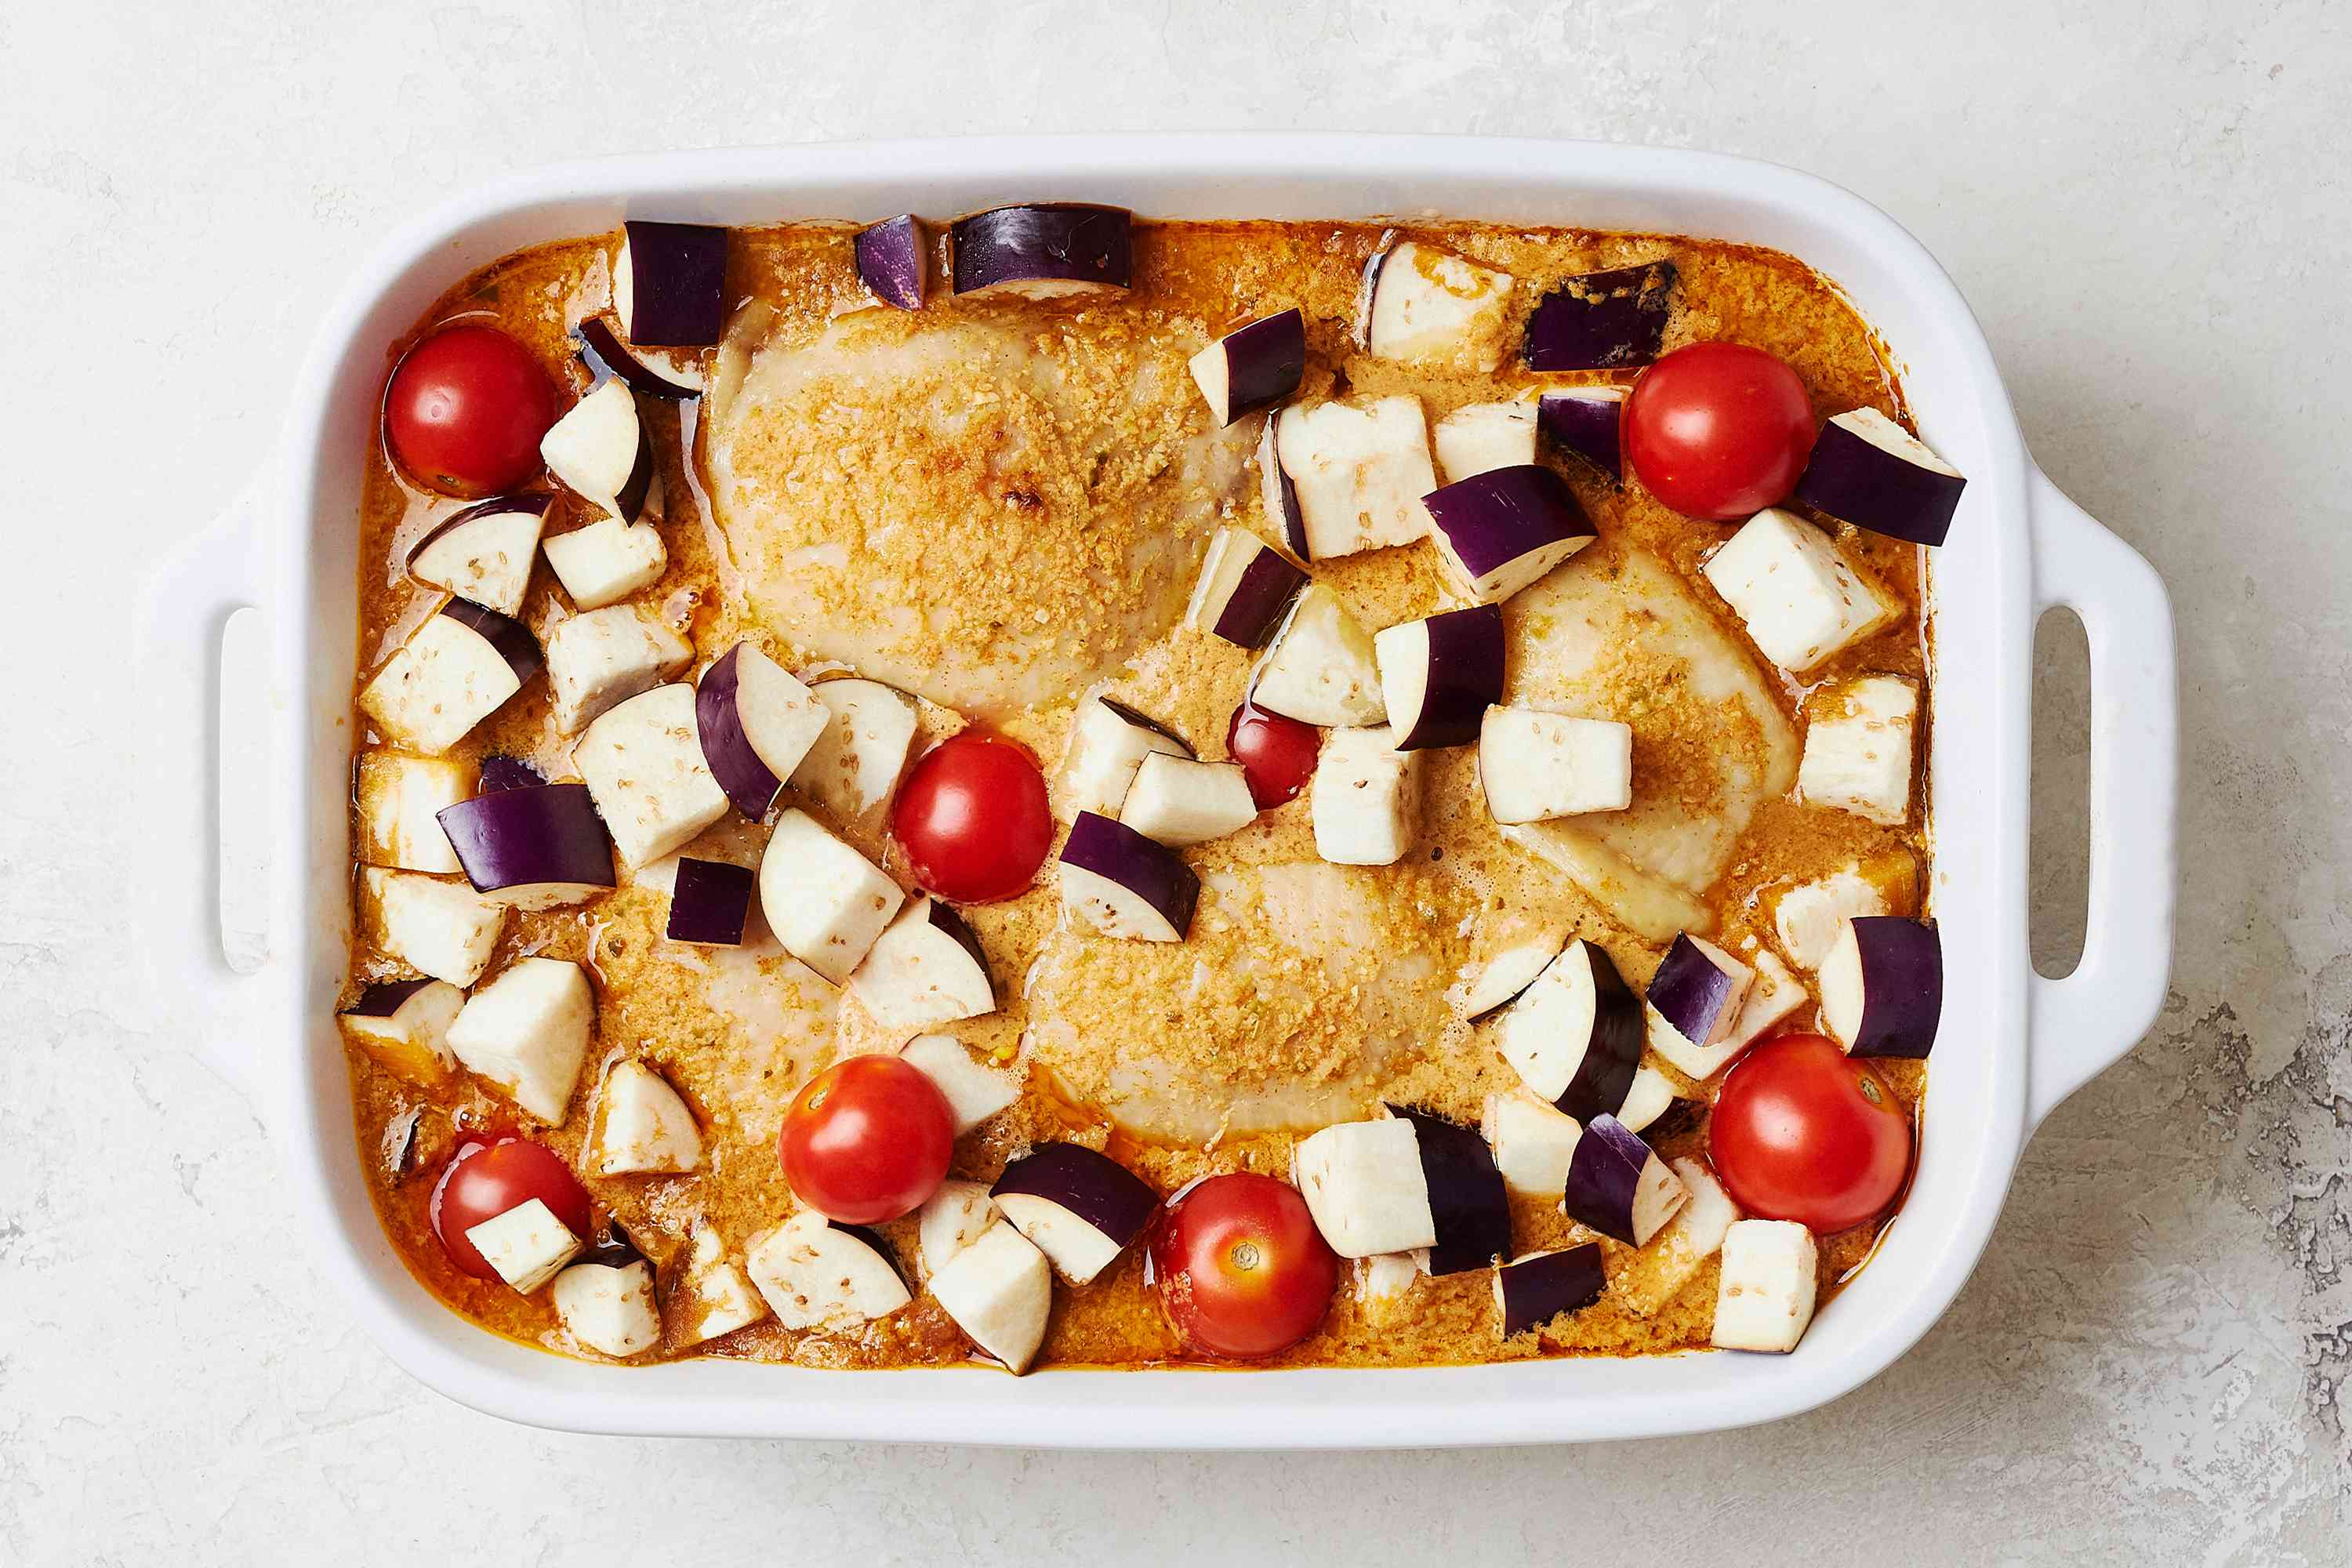 chicken with curry and vegetables in a baking dish